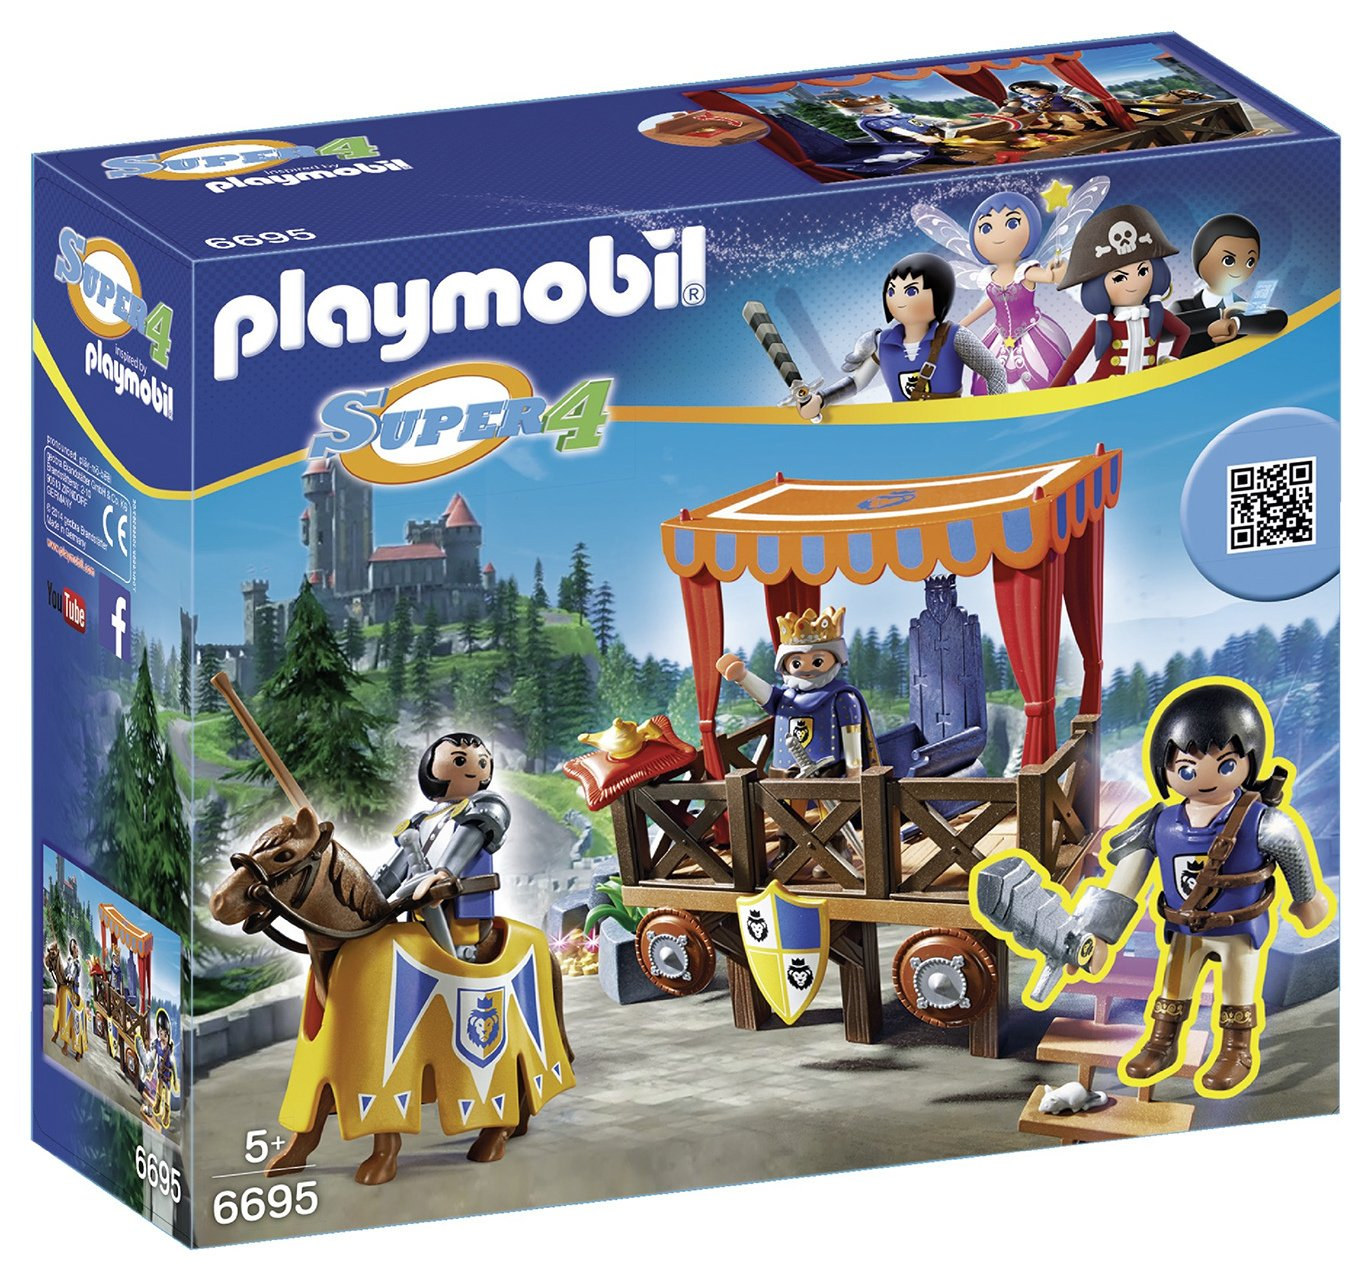 Playmobil 6695 Super 4 Royal Tribune With Alex.